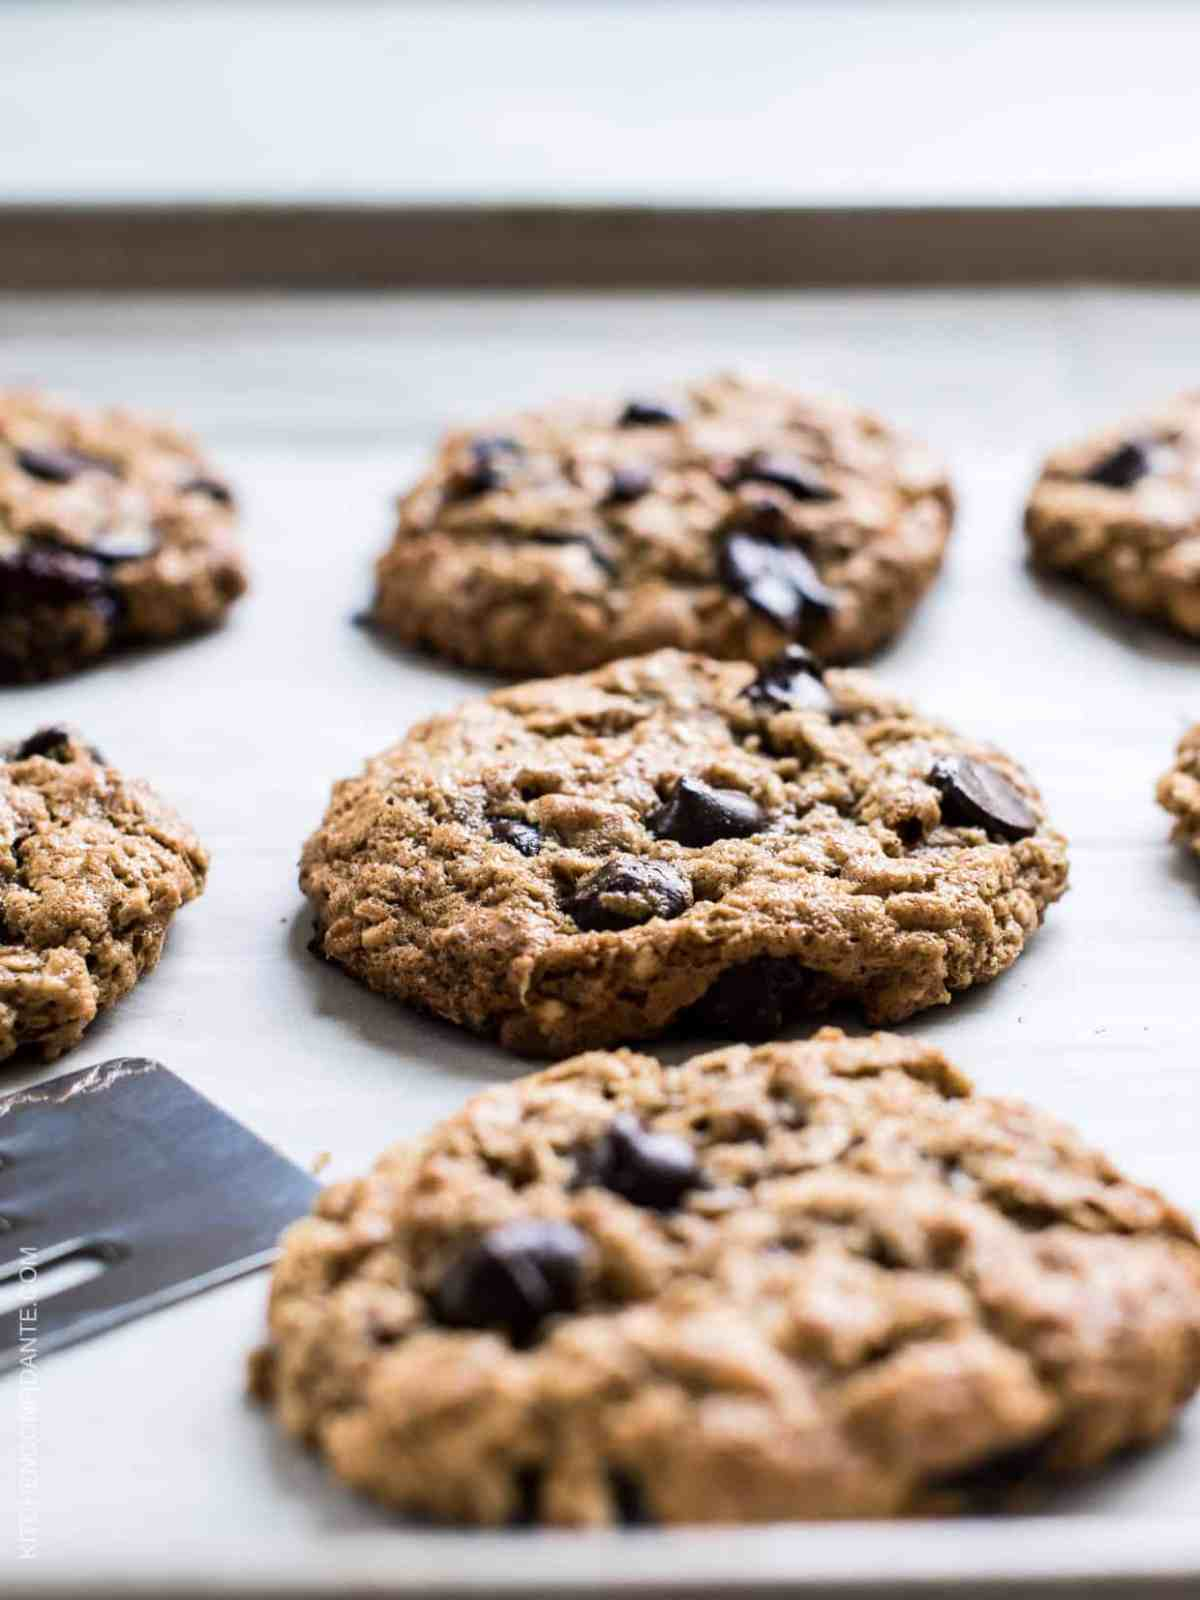 Chewy, gooey Almond Butter Oatmeal Cookies. Gluten-free and dairy-free recipe.